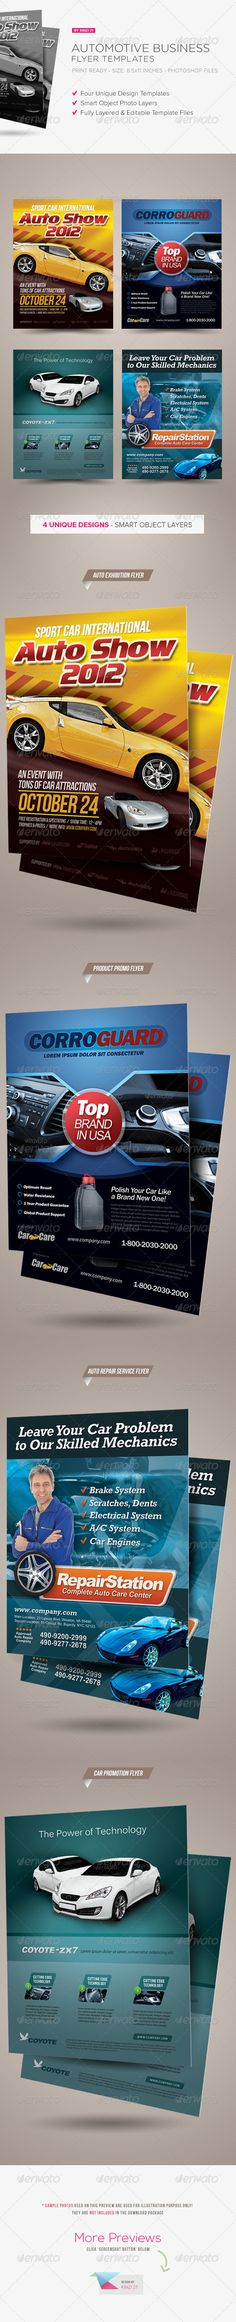 Premium Automotive Business Flyers #GraphicRiver Premium Automotive Business Flyers Another premium flyers designed for automotive industry. You will get four unique flyers for different purpose, i.e. new car promotion flyer, car exhibition or auto show flyer, auto supported product flyer and car repair service flyer. These flyer designs can also be used as a poster or magazine advert. Features: - Size: 8.5×11 inches - Bleed area: 0.25 inches - Color: CMYK / 300 dpi - Four Photoshop .psd…